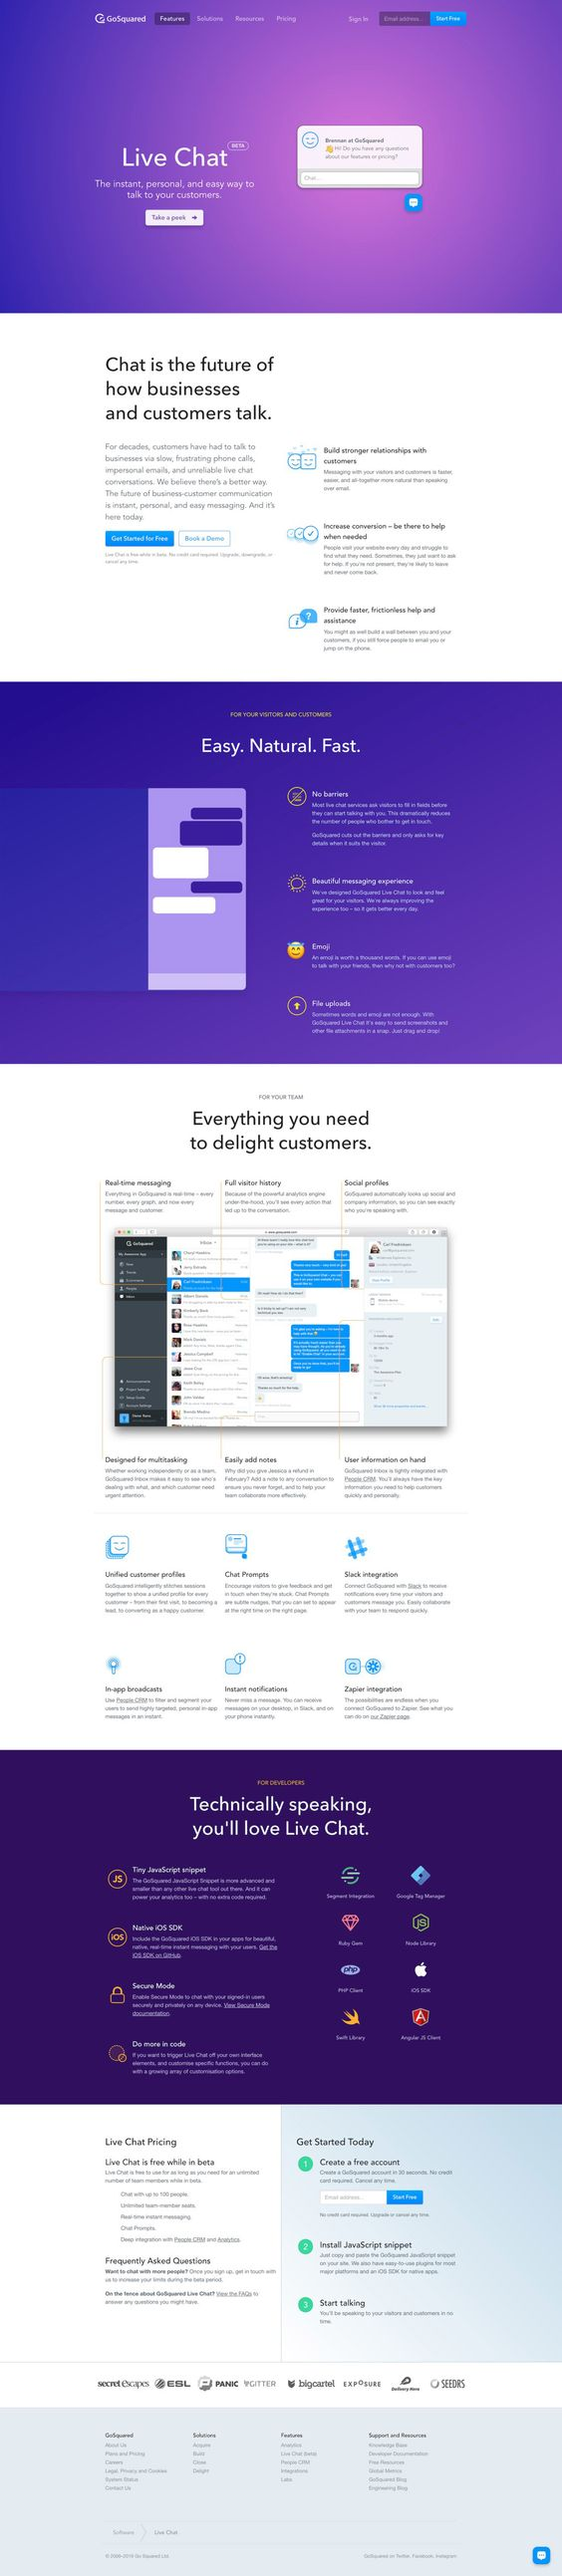 Gosquared live chat landing pages pinterest